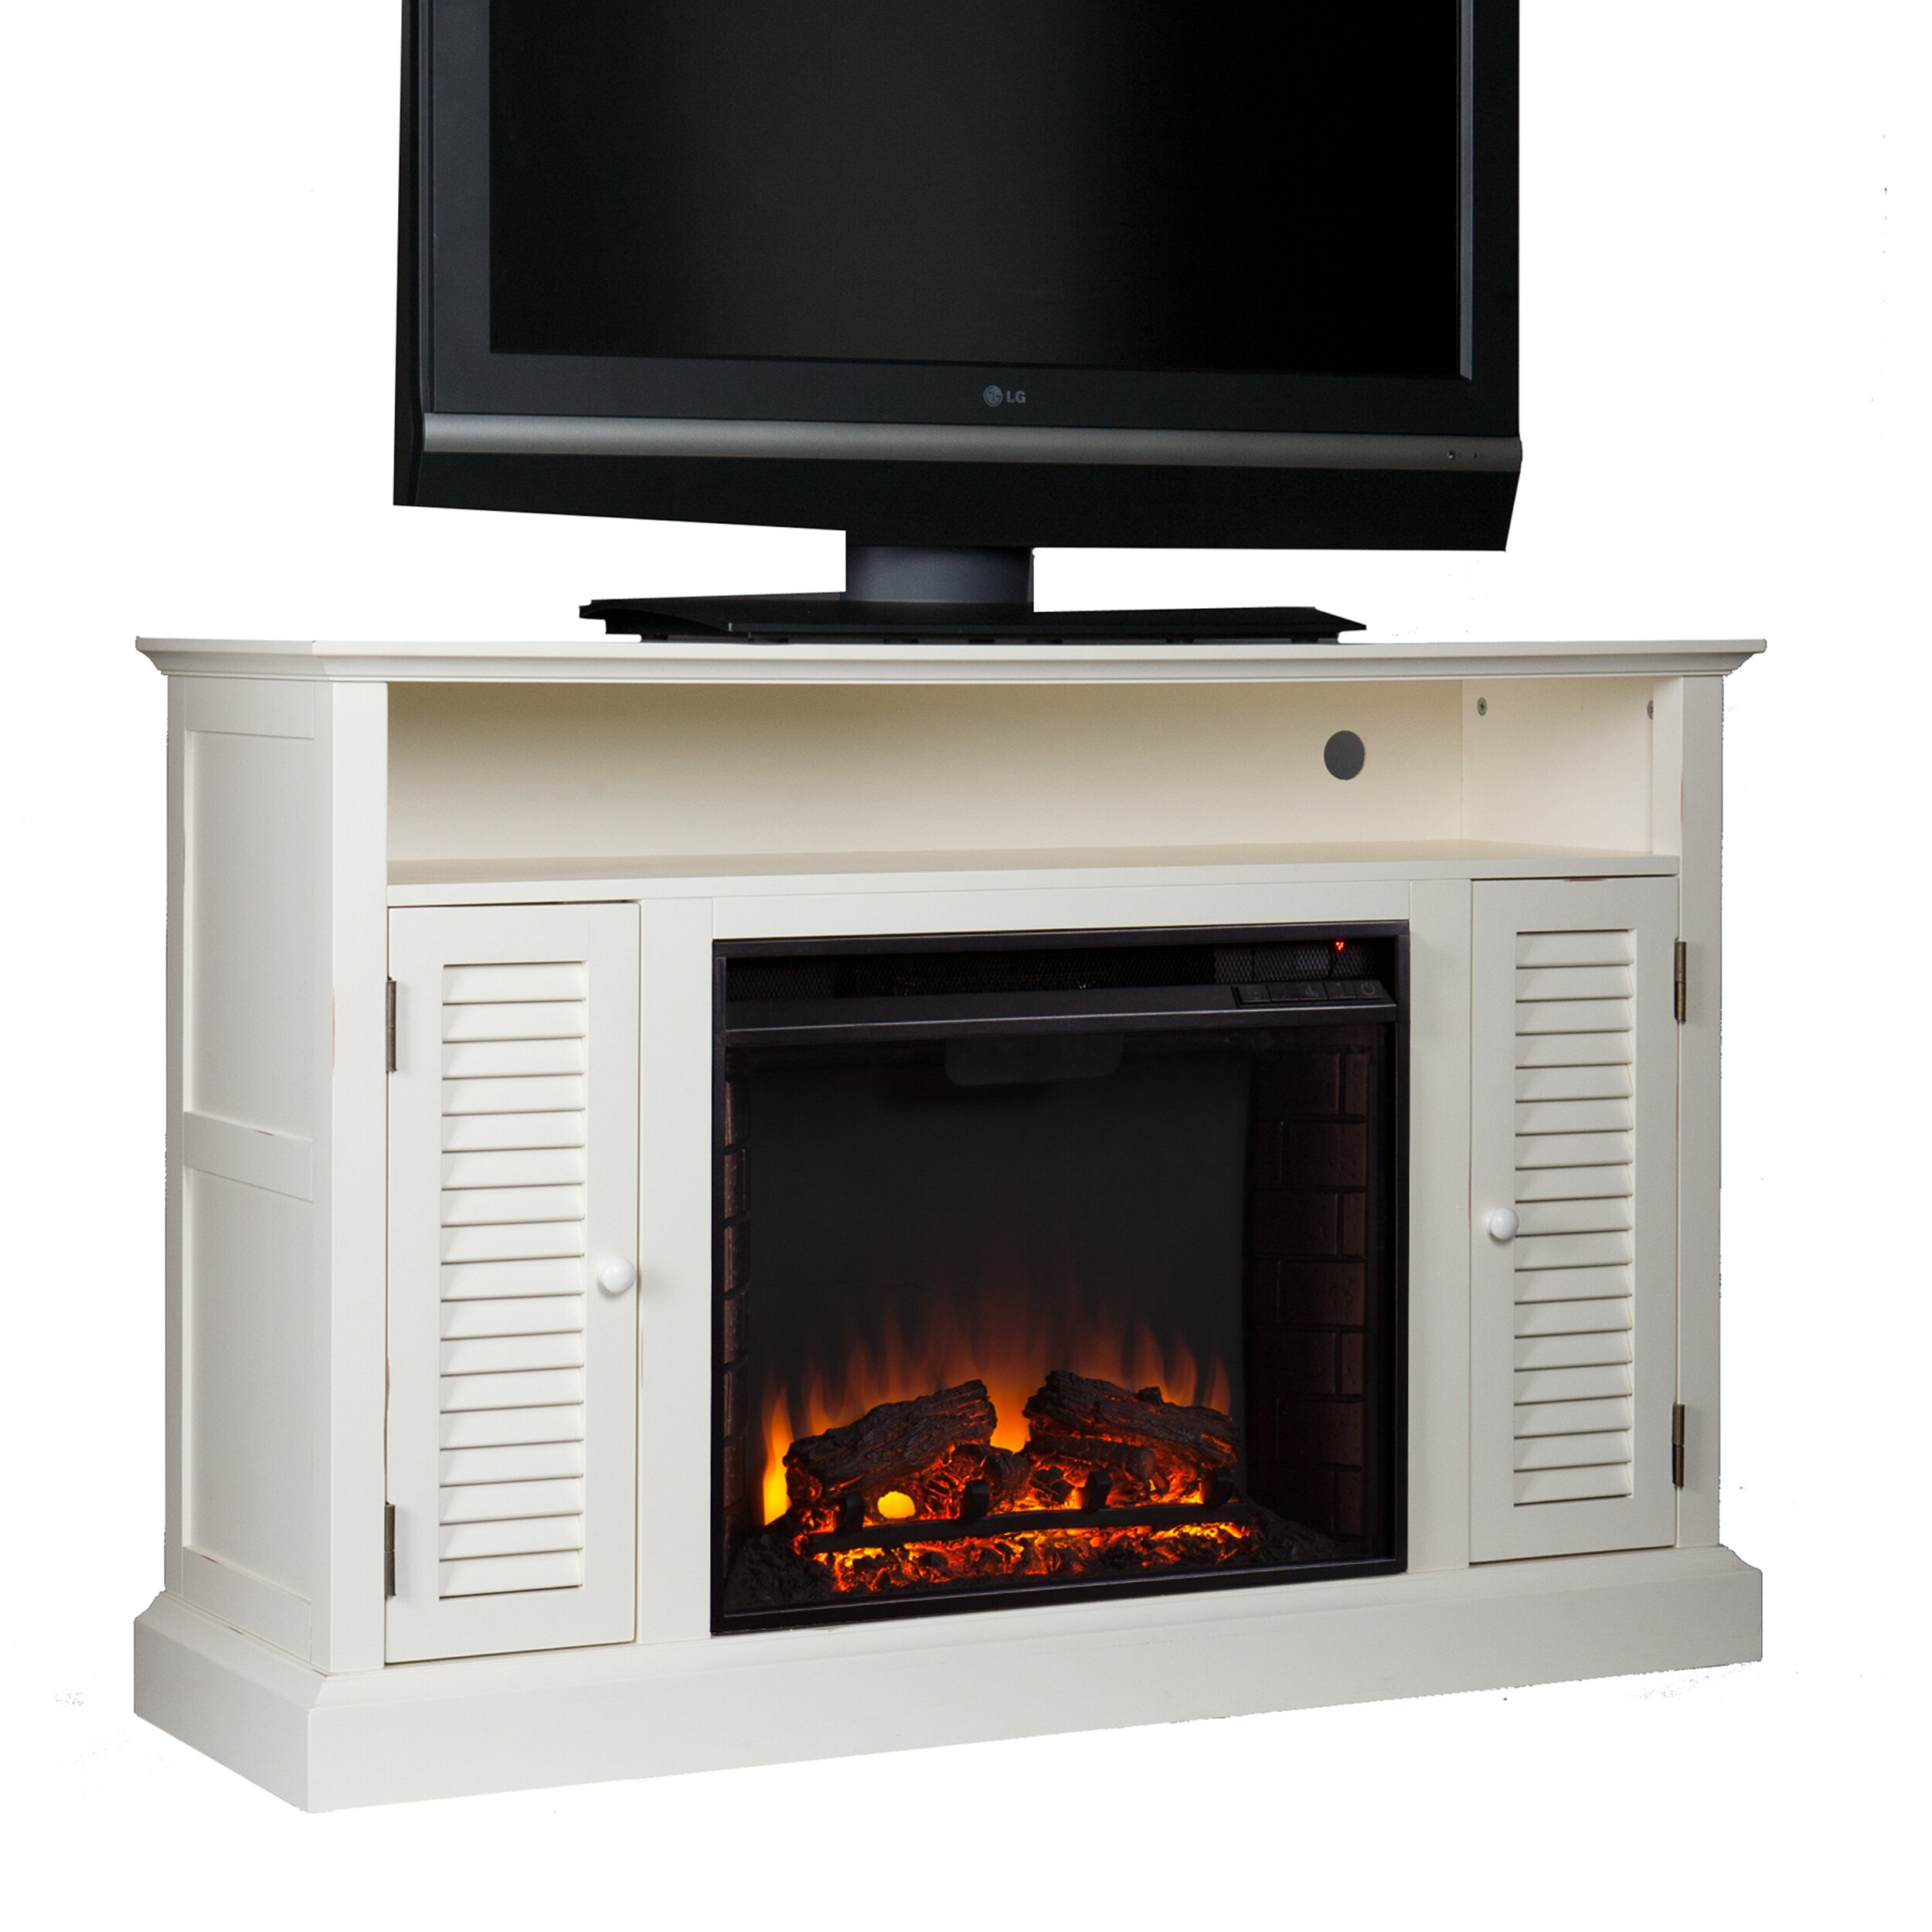 Darby Home Co Ginsberg Tv Stand With Electric Fireplace Reviews Wayfair